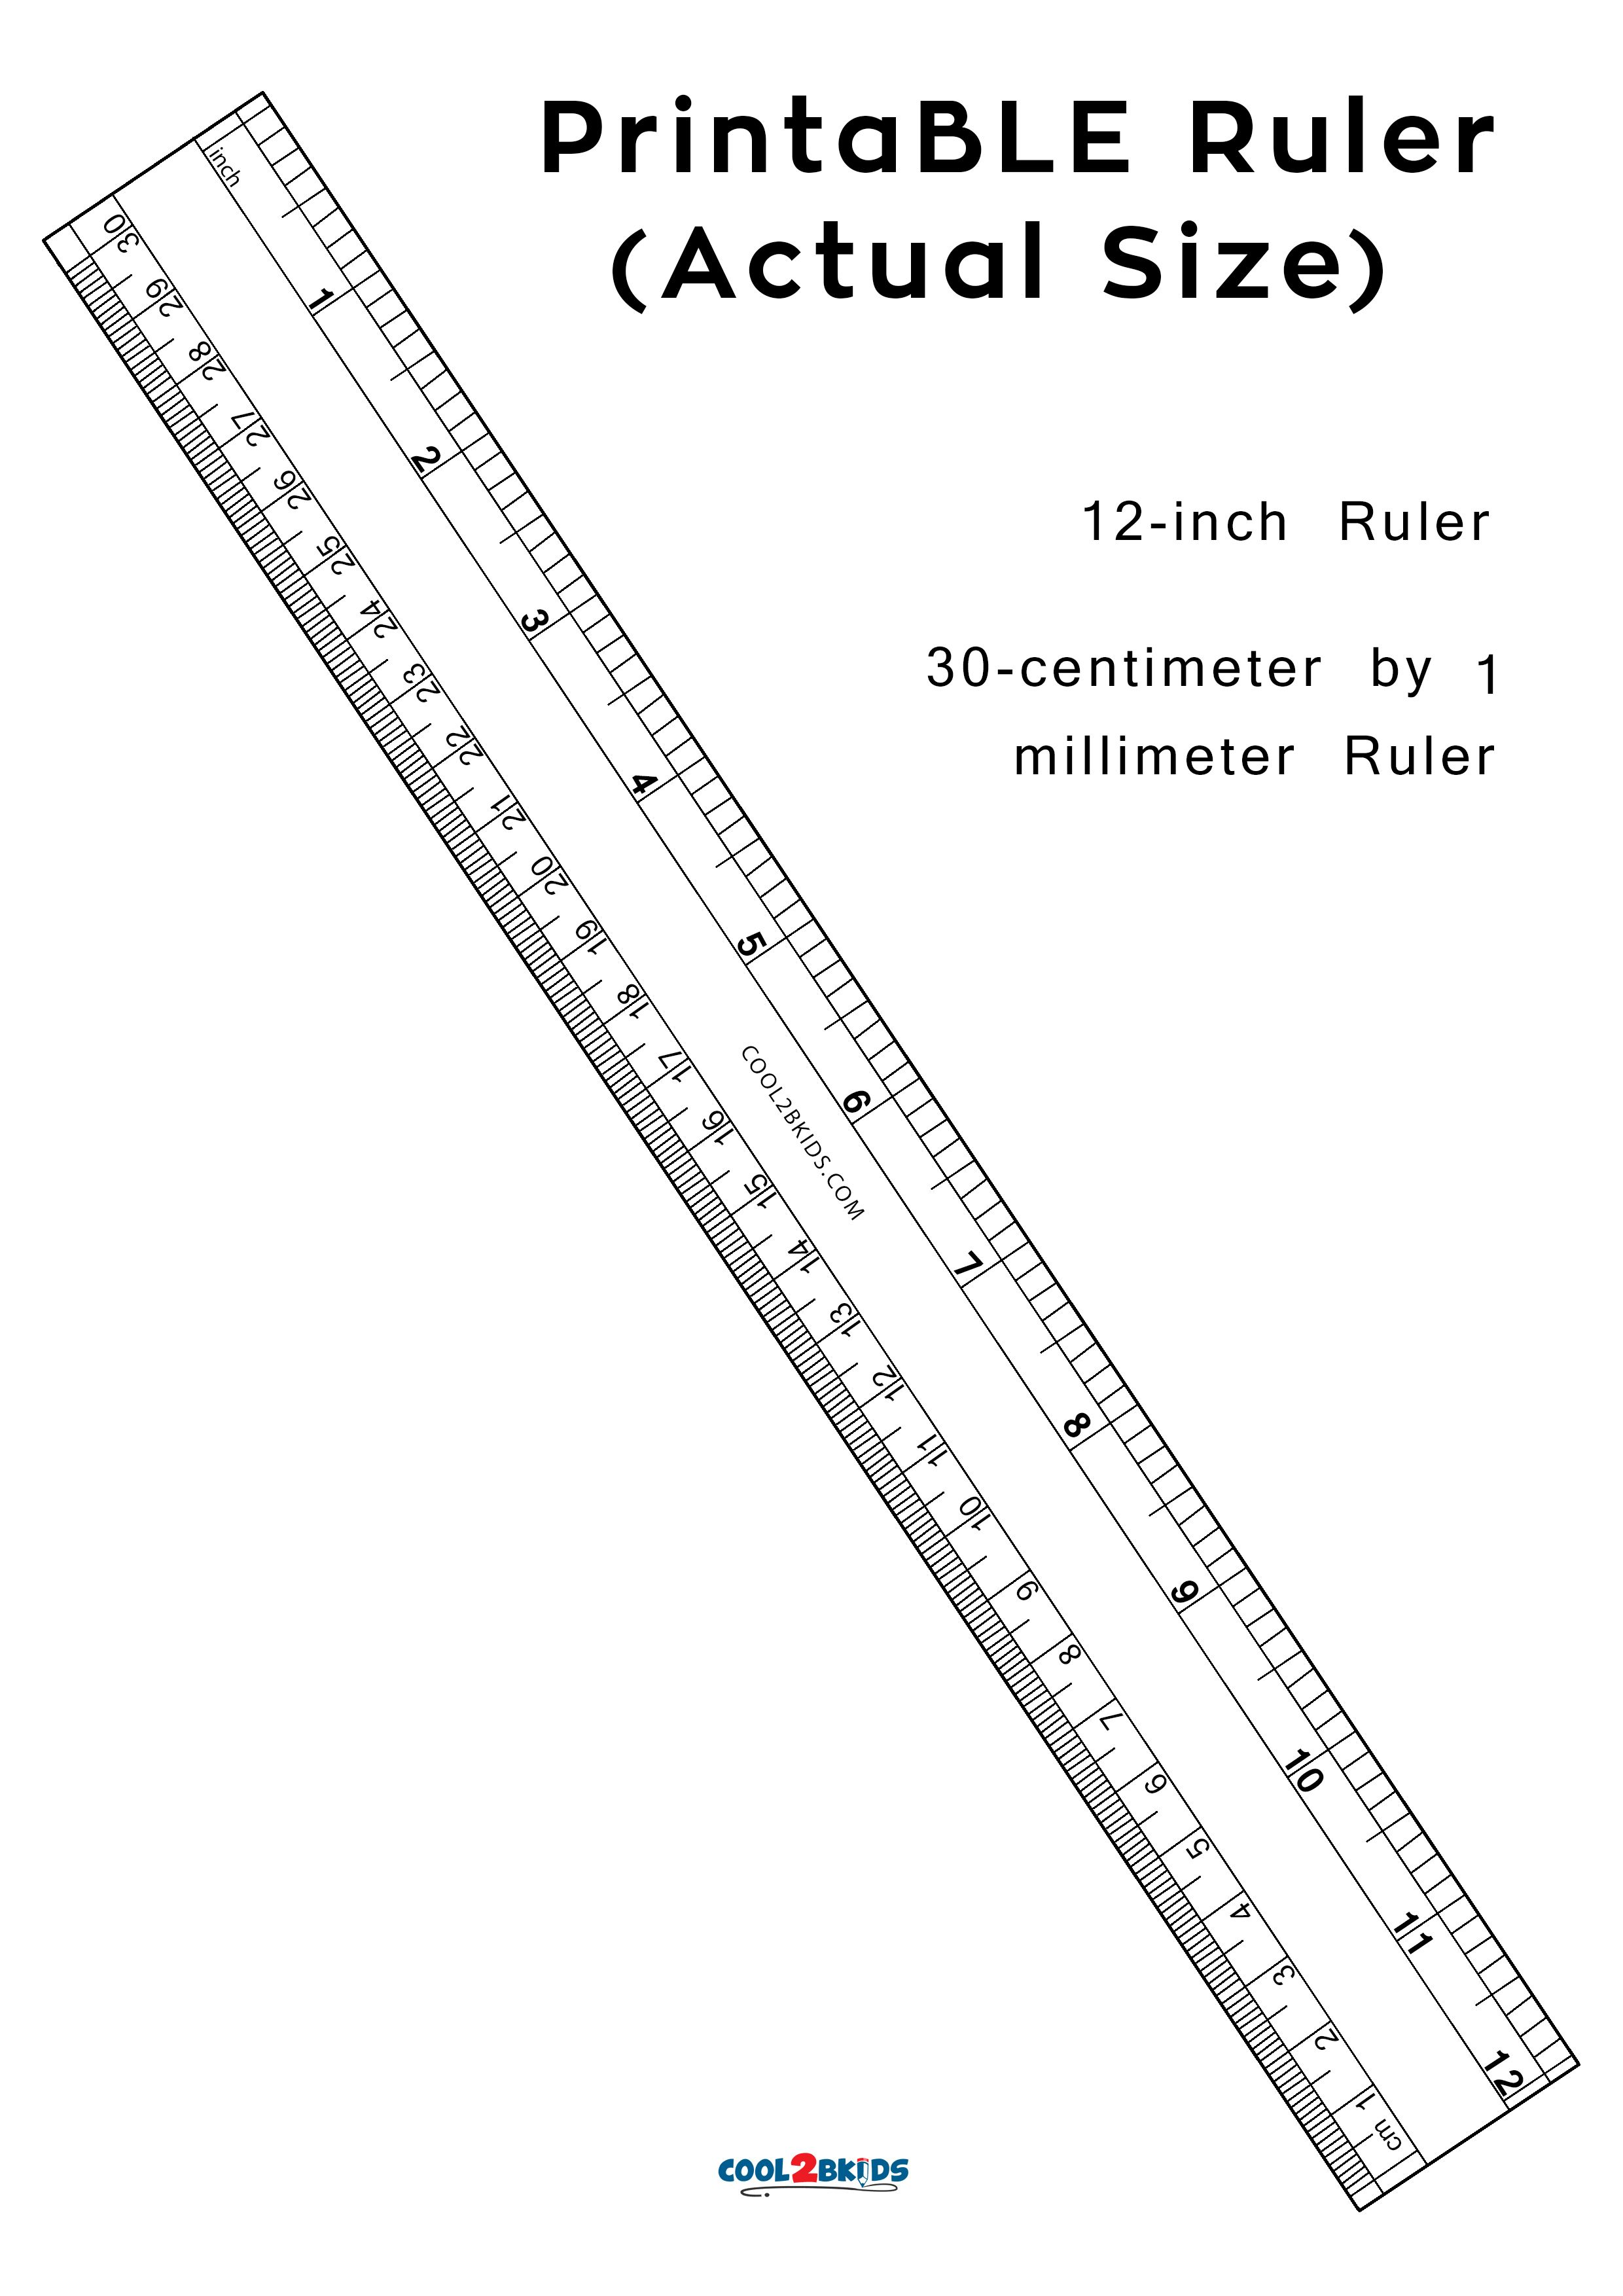 Printable Ruler 12 Inch Actual Size Cool2bkids Printable Ruler Ruler Millimeter Ruler [ 3508 x 2480 Pixel ]